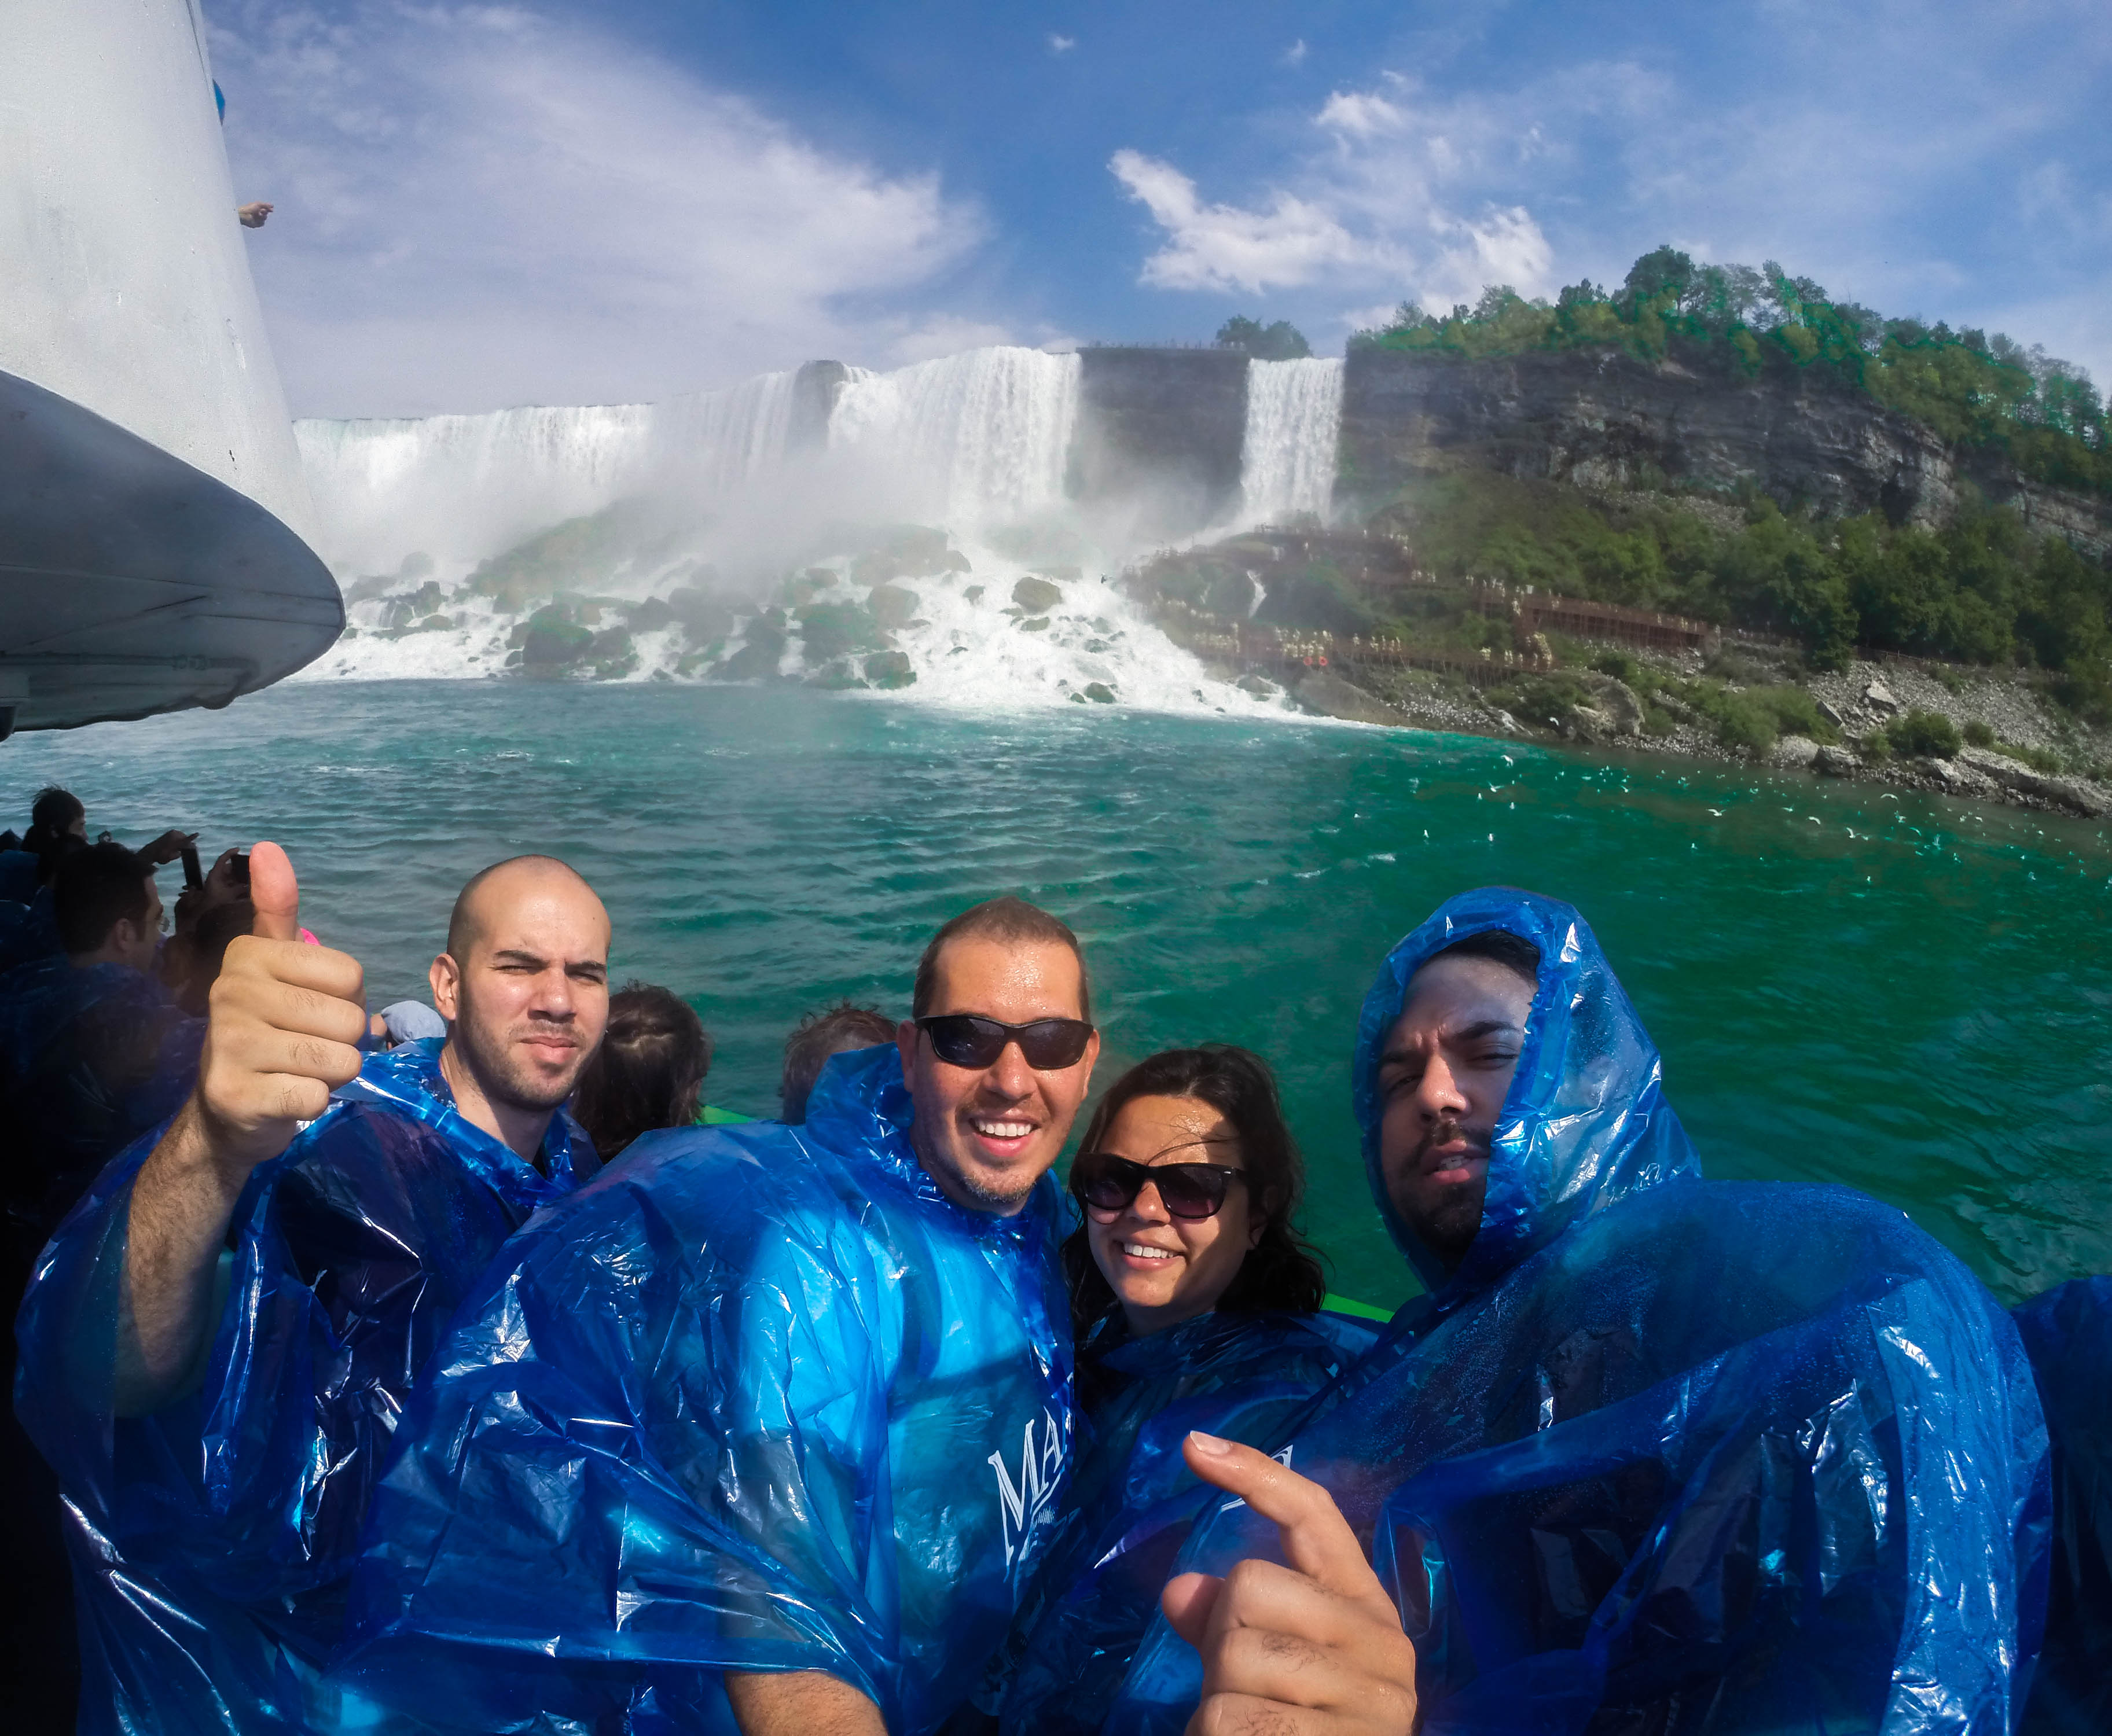 Awesome experience on the Maid of the Mist